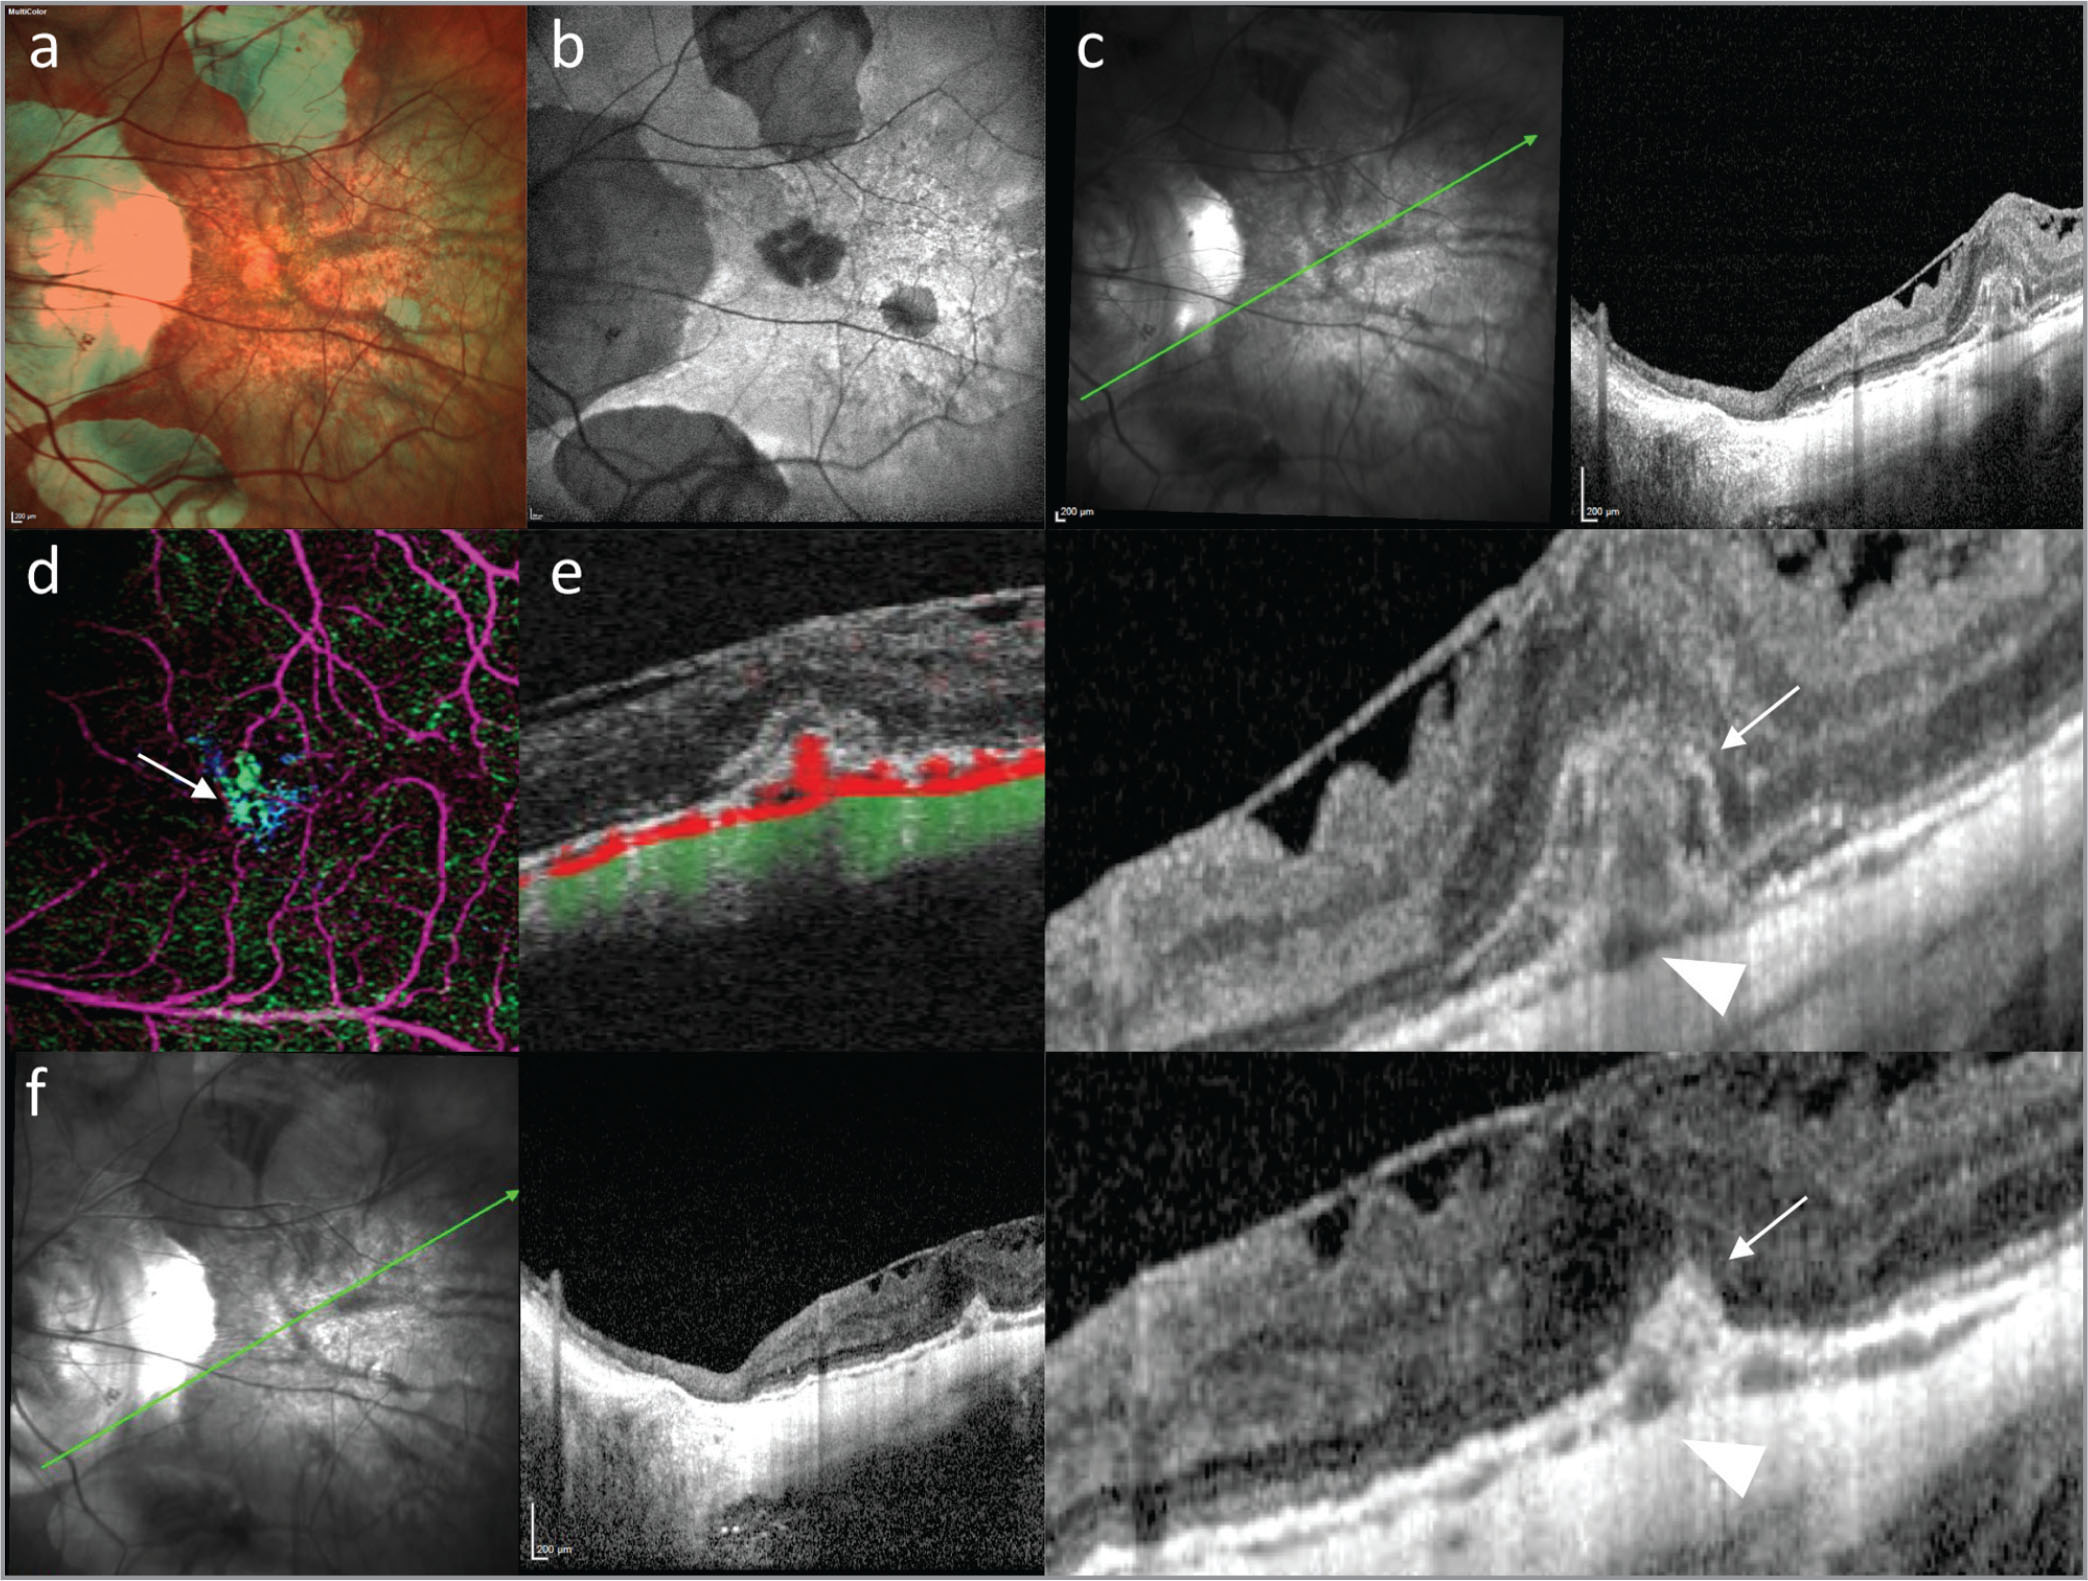 Multimodal imaging of retinal pigment epithelium (RPE) hump associated with myopic choroidal neovascularization. Multicolor imaging (a) and fundus autofluorescence (b) revealed multiple patchy areas of RPE atrophy and lacquer cracks; structural optical coherence tomography (OCT) (c) illustrated the presence of an epiretinal membrane associated with subretinal hyperreflective material (arrow) over an RPE hump (arrowhead). En face (d) and B-scan (e) OCT angiography confirmed the presence of choroidal neovascularization (CNV; arrow). After 6 months of treatment with intravitreal injections of anti-vascular endothelial growth factor agents, OCT (f) shows a significant reduction of the subretinal hyperreflective material with scarring of the choroidal neovascularization (arrow) over the RPE hump (arrowhead).